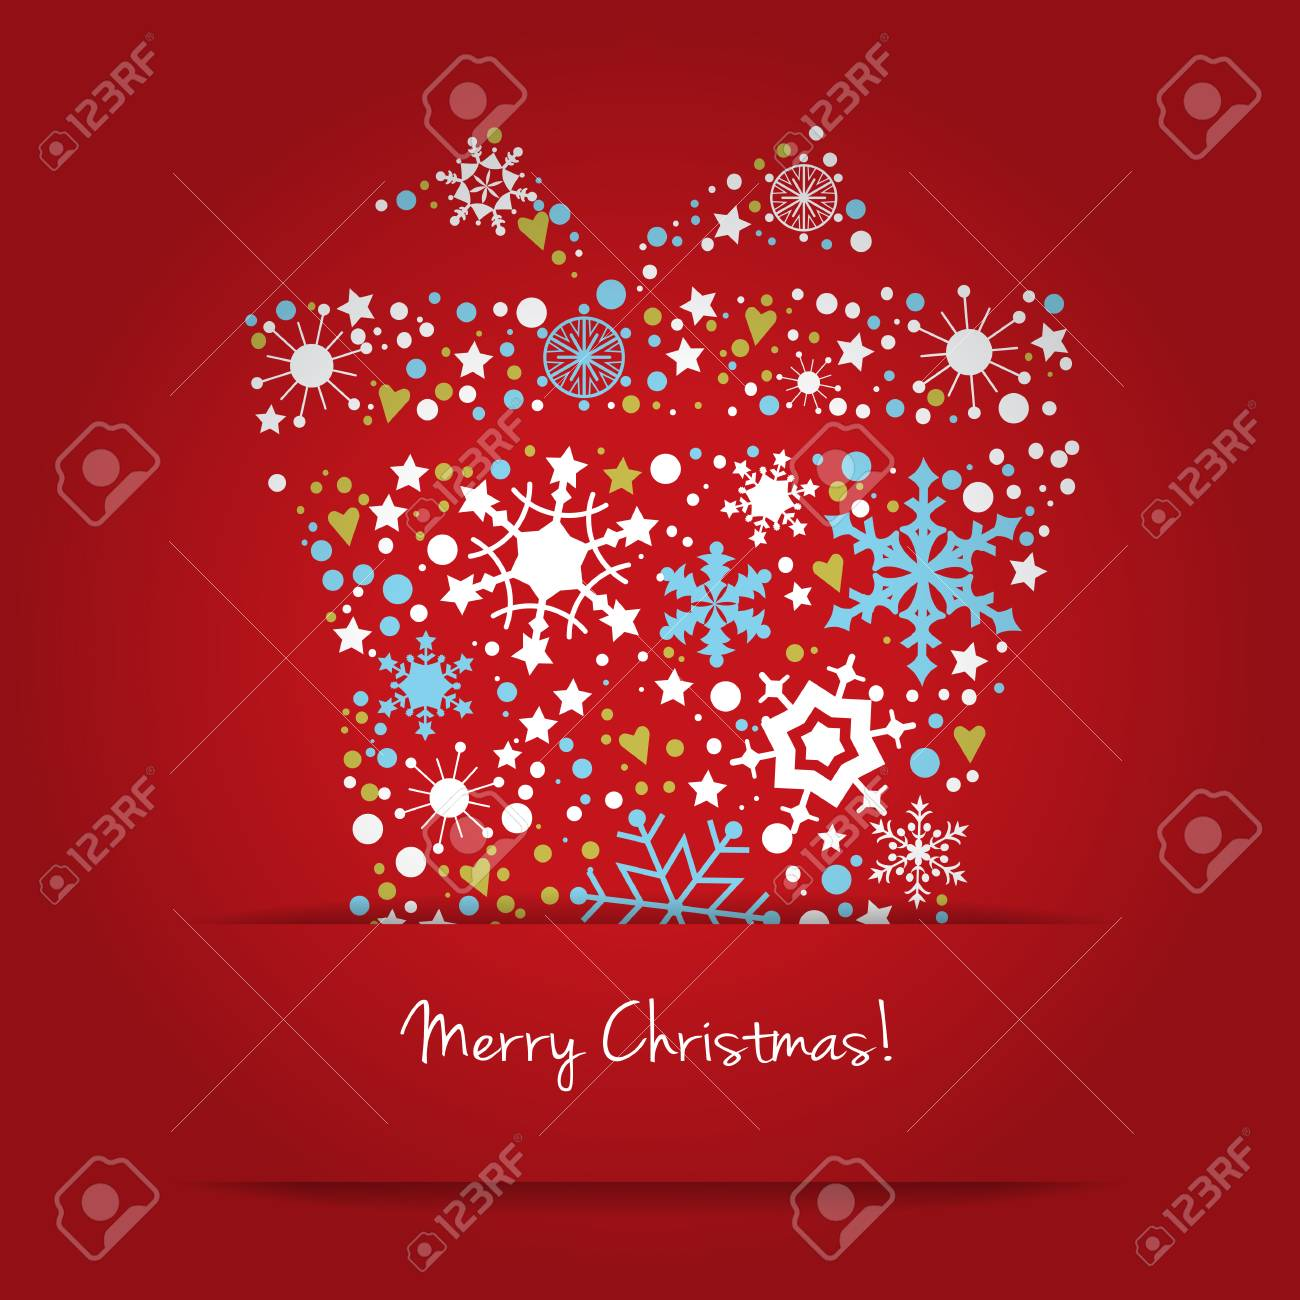 Bright Christmas Gift Box With Wishes Made From Snowflake Stylized Royalty Free Cliparts Vectors And Stock Illustration Image 34211681